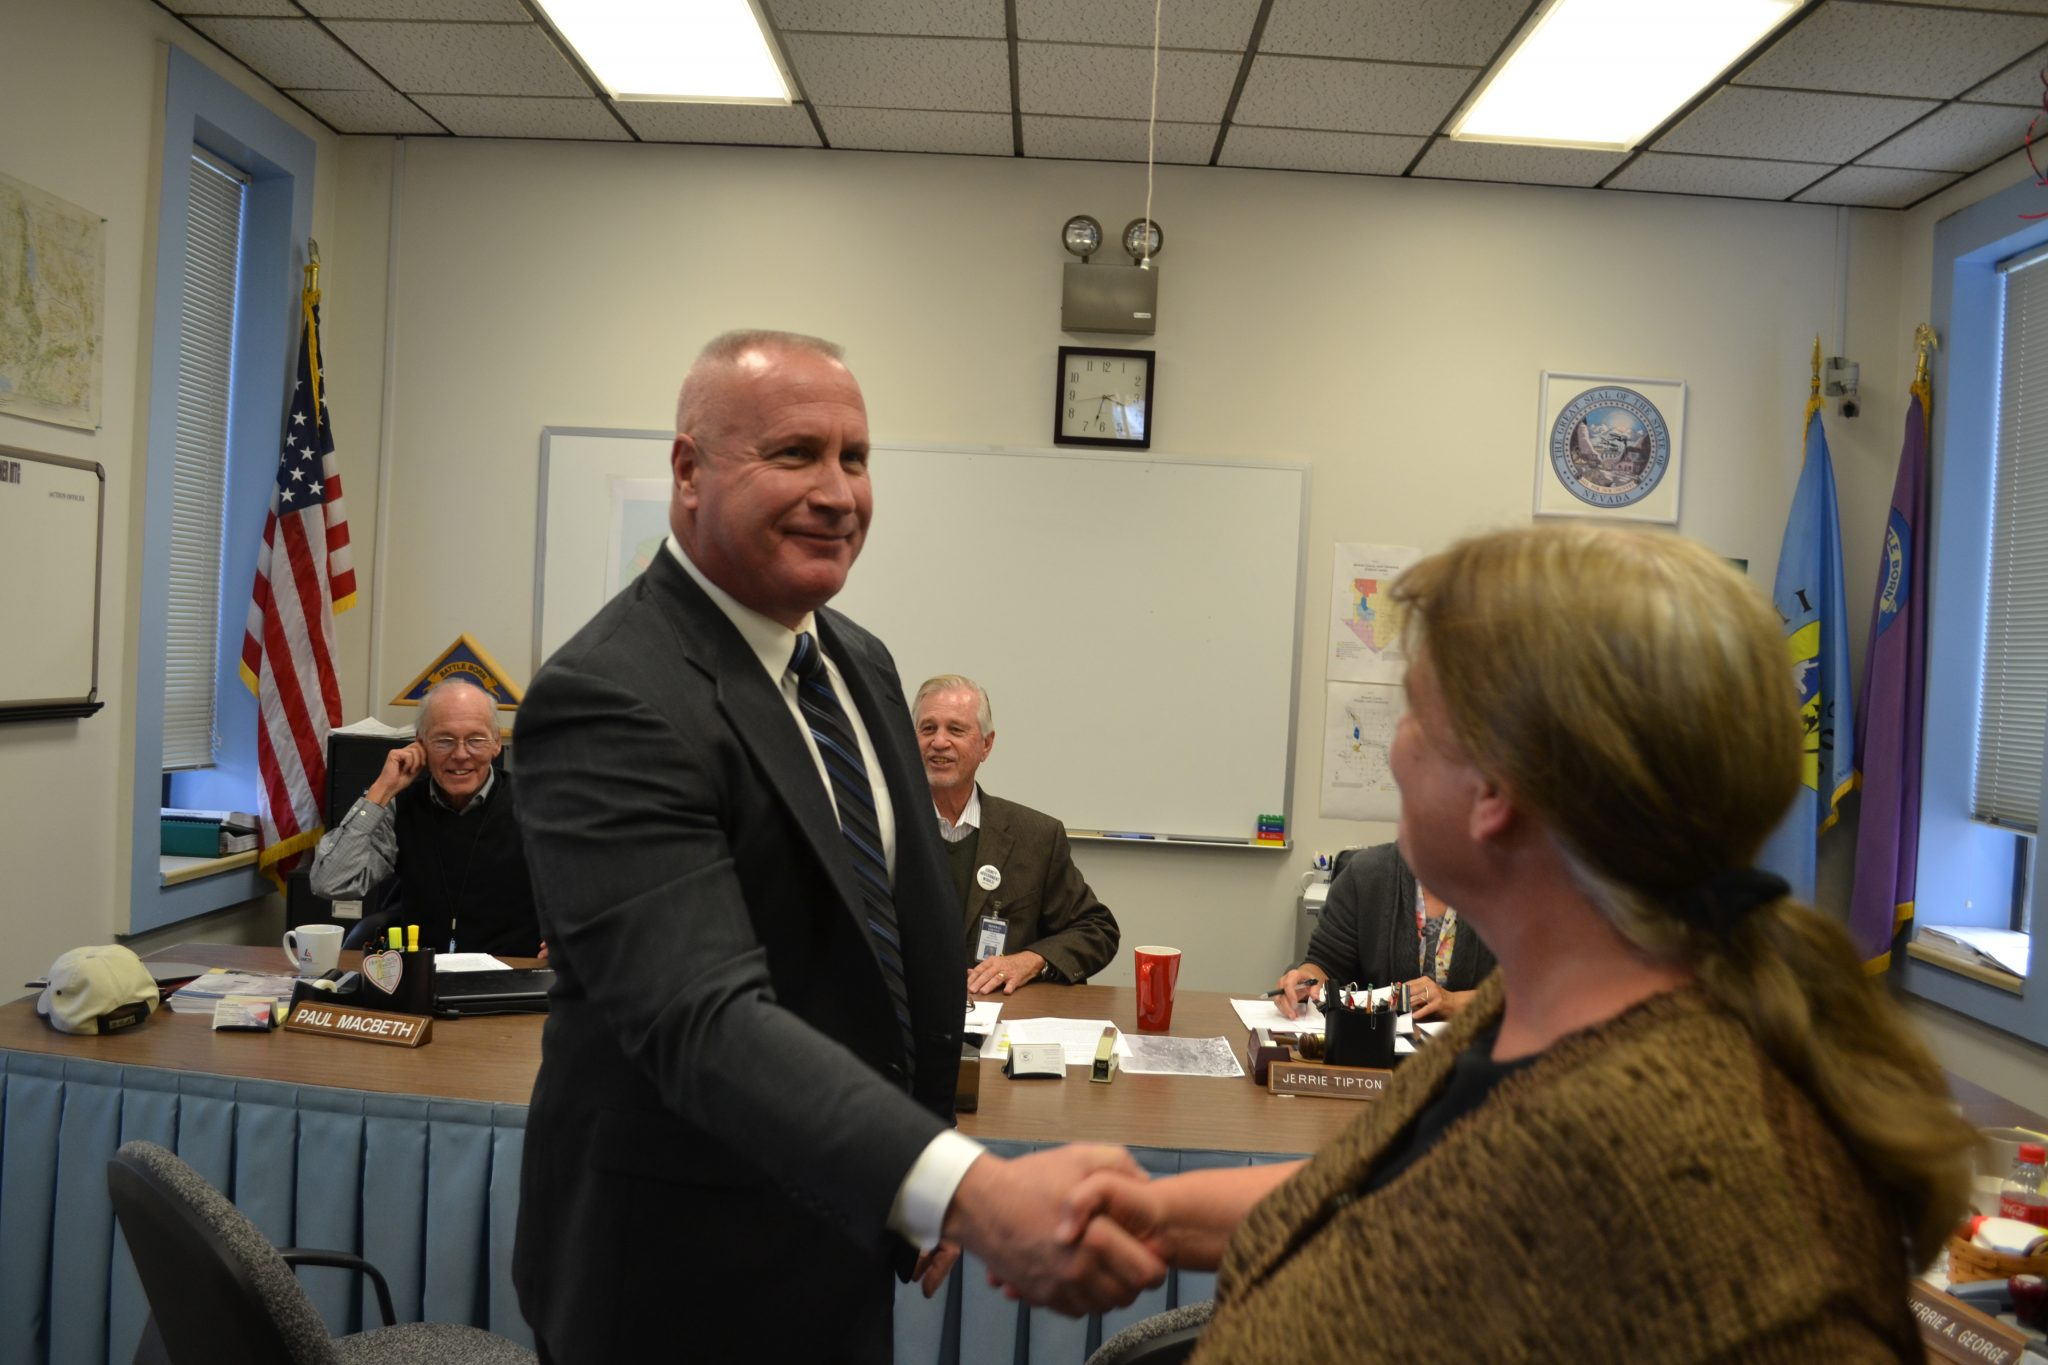 Handte to take over as sheriff